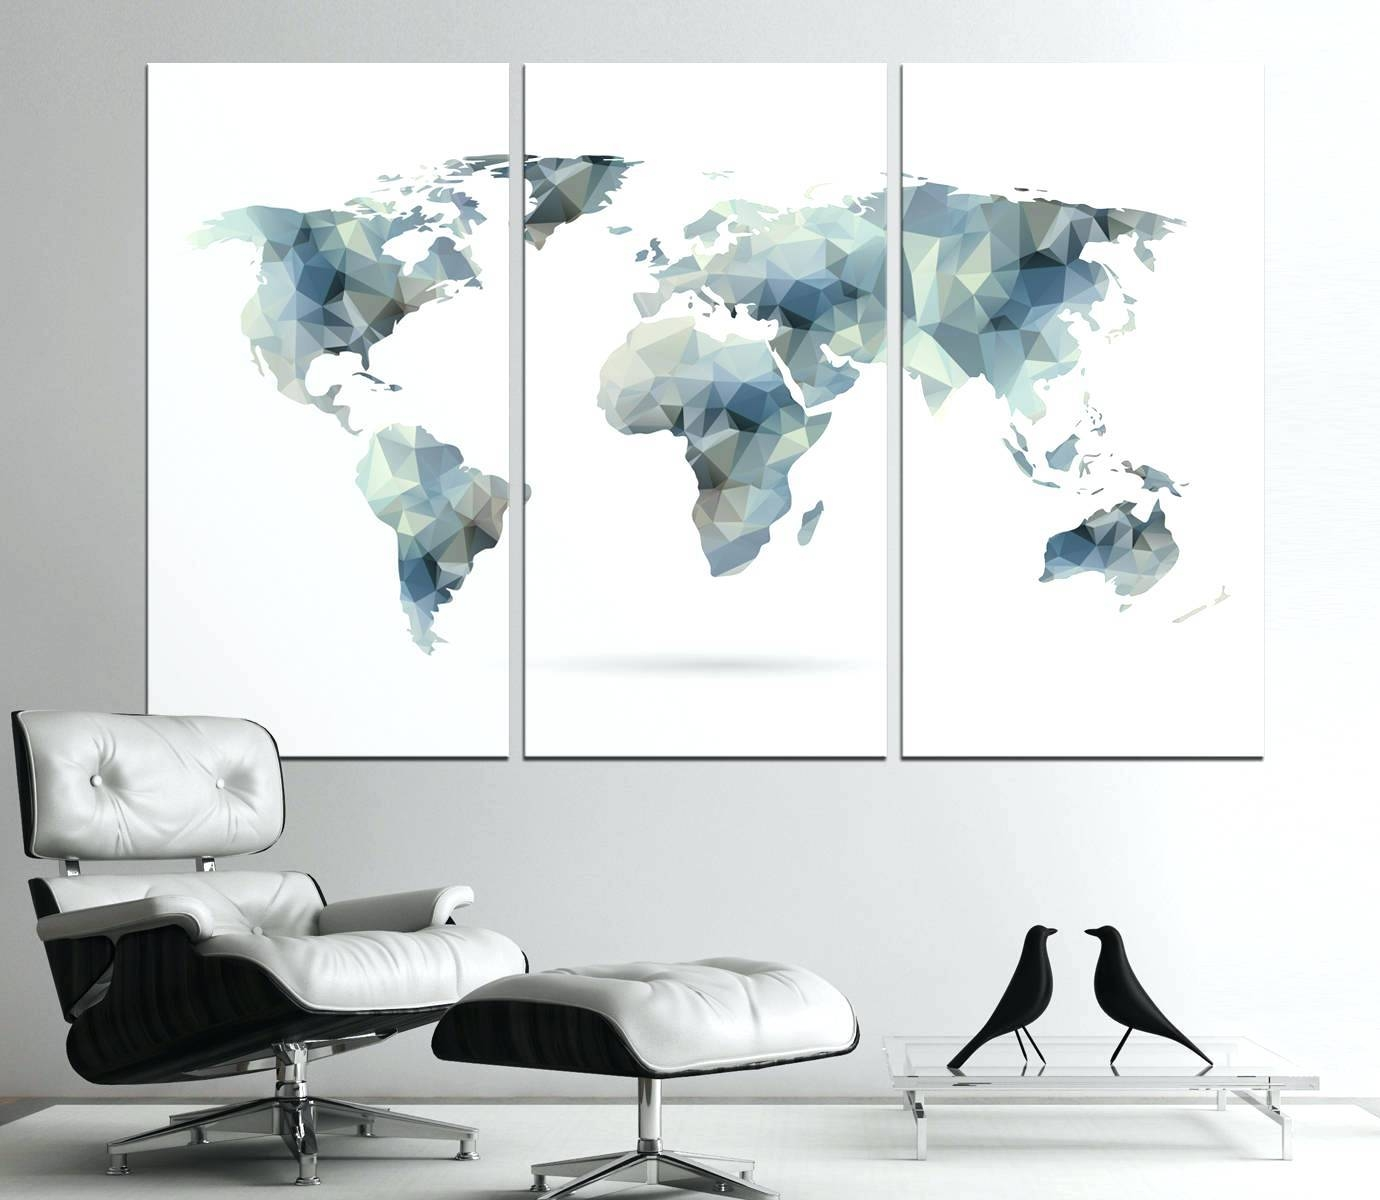 Wall Arts ~ Wall Art For Home Office Large Geometric World Map Intended For Newest World Map Wall Art (Gallery 8 of 20)